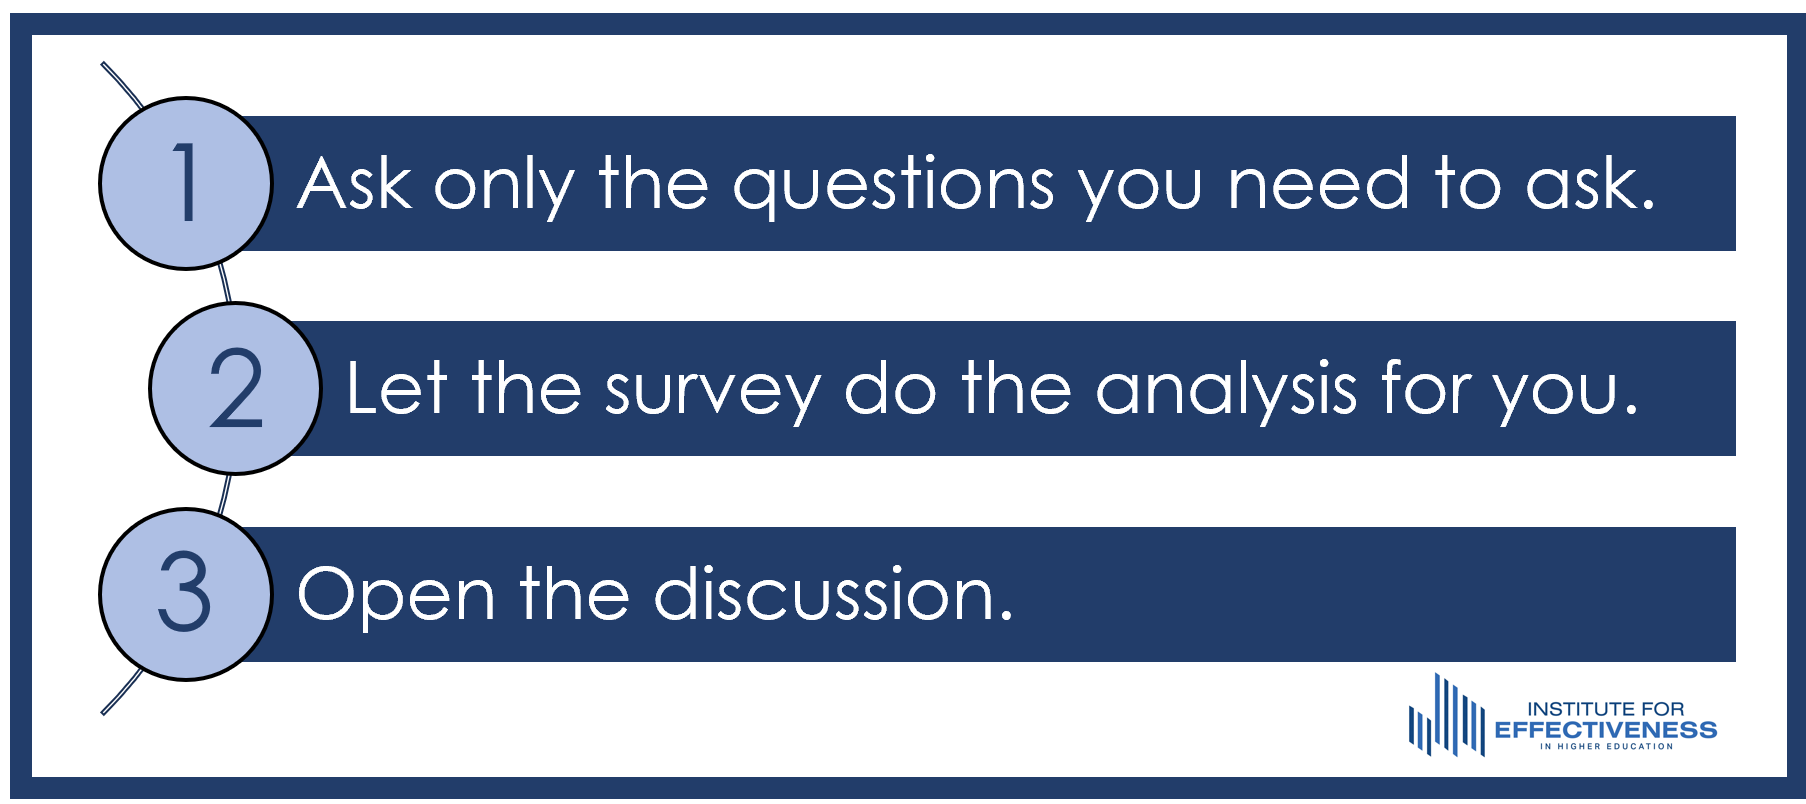 Ask only the questions you need to ask. Let the survey do the analysis for you. Open the discussion.